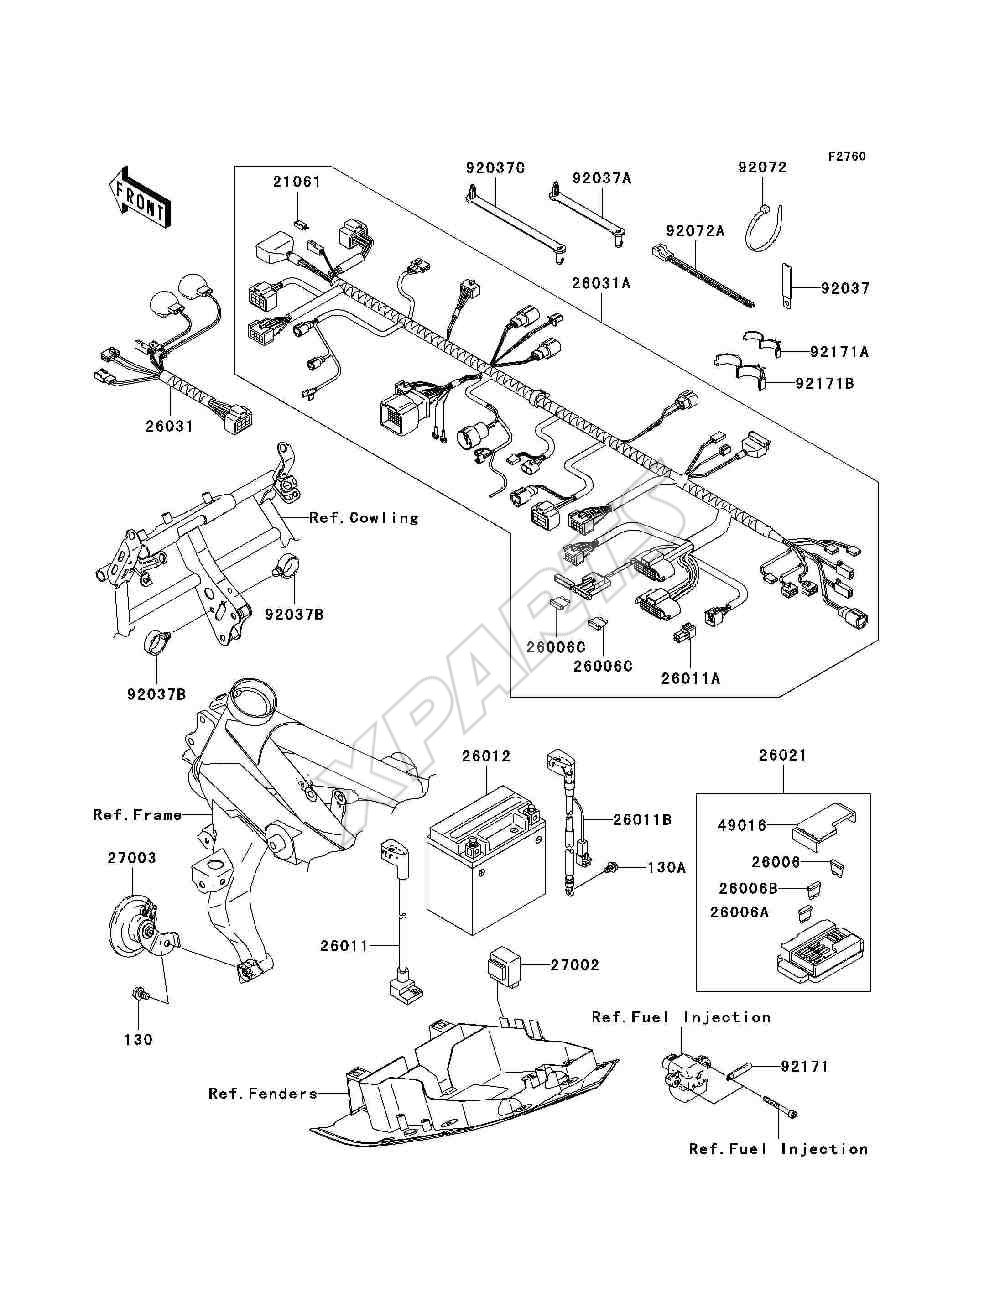 Kawasaki Z750s Zr750 K6f Fra 2006 Originale Reservedele Motorcycle Parts Kx65a6f Kx65 Engine Covers Diagram Billede Til Varegruppe Chassis Electrical Equipment